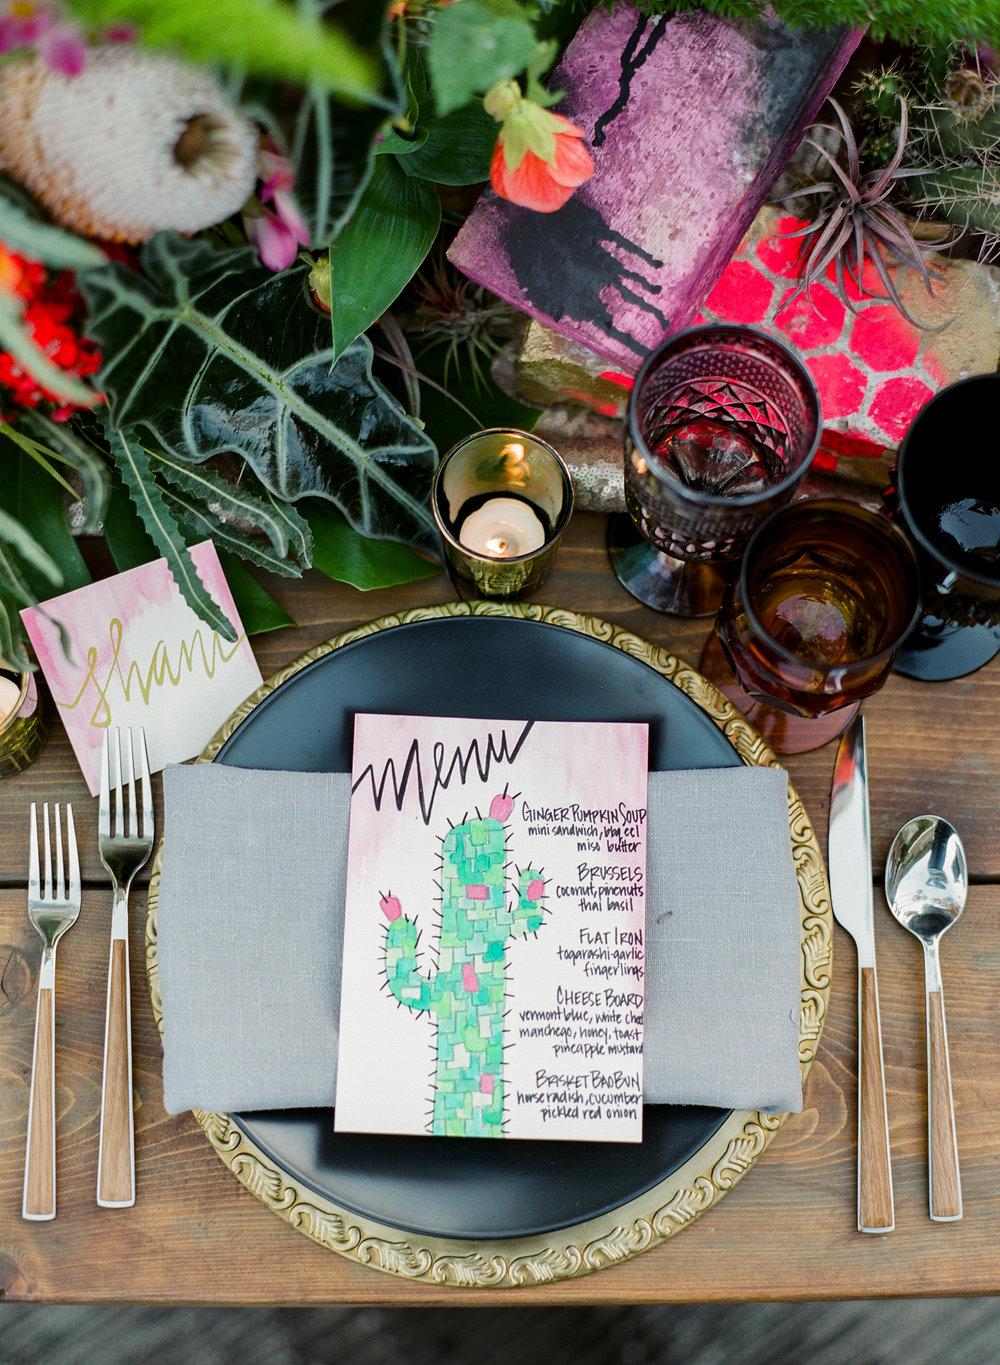 www.santabarbarawedding.com | I Heart My Groom | Bijoux Events | The Goodland SB | Ella & Louie | Reception Table Place Setting